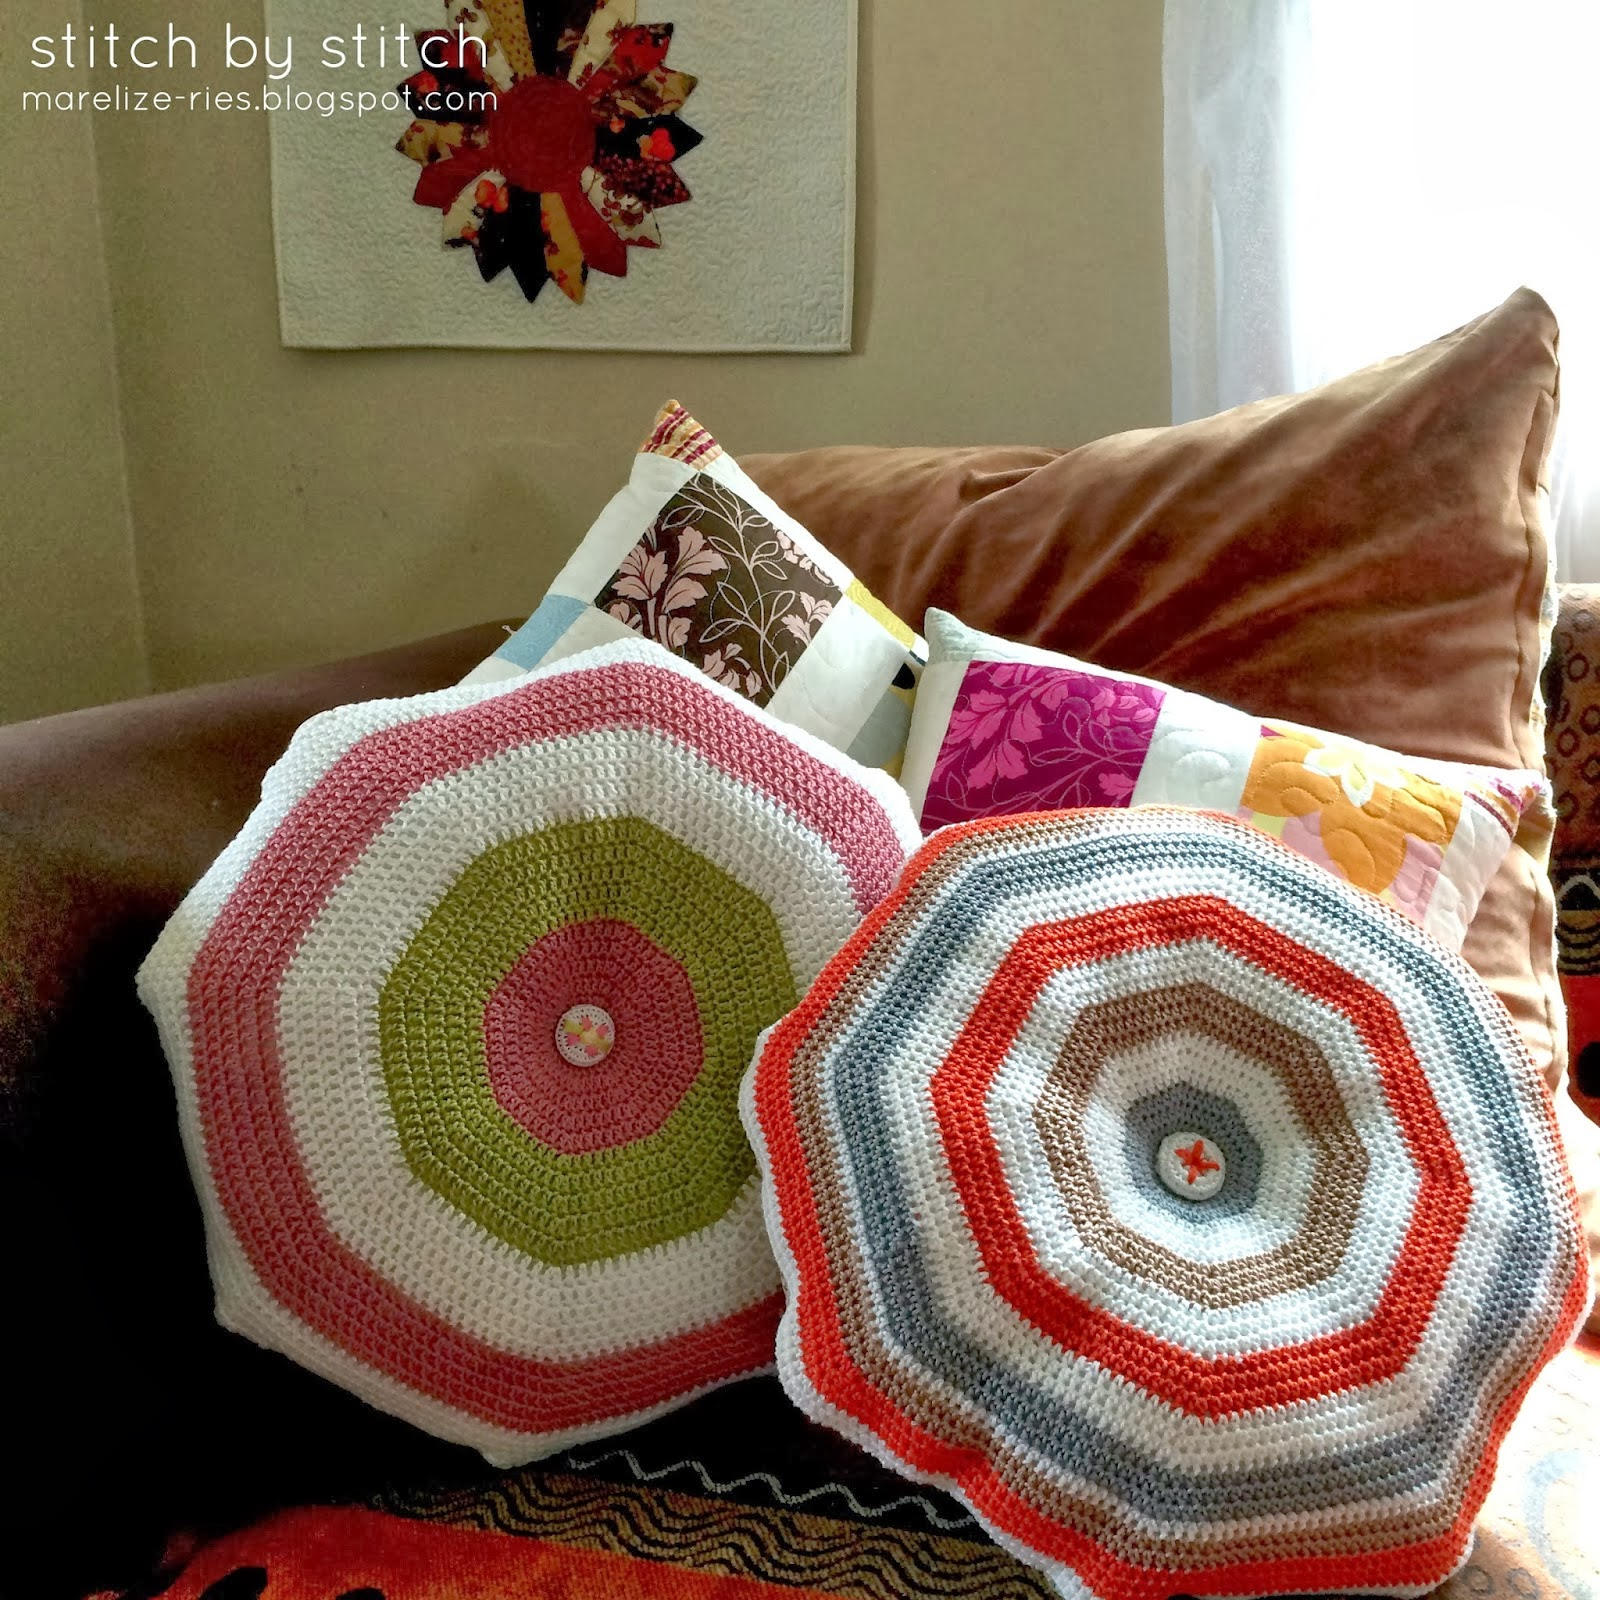 http://marelize-ries.blogspot.com/2014/03/simple-crochet-cushion-tutorial.html